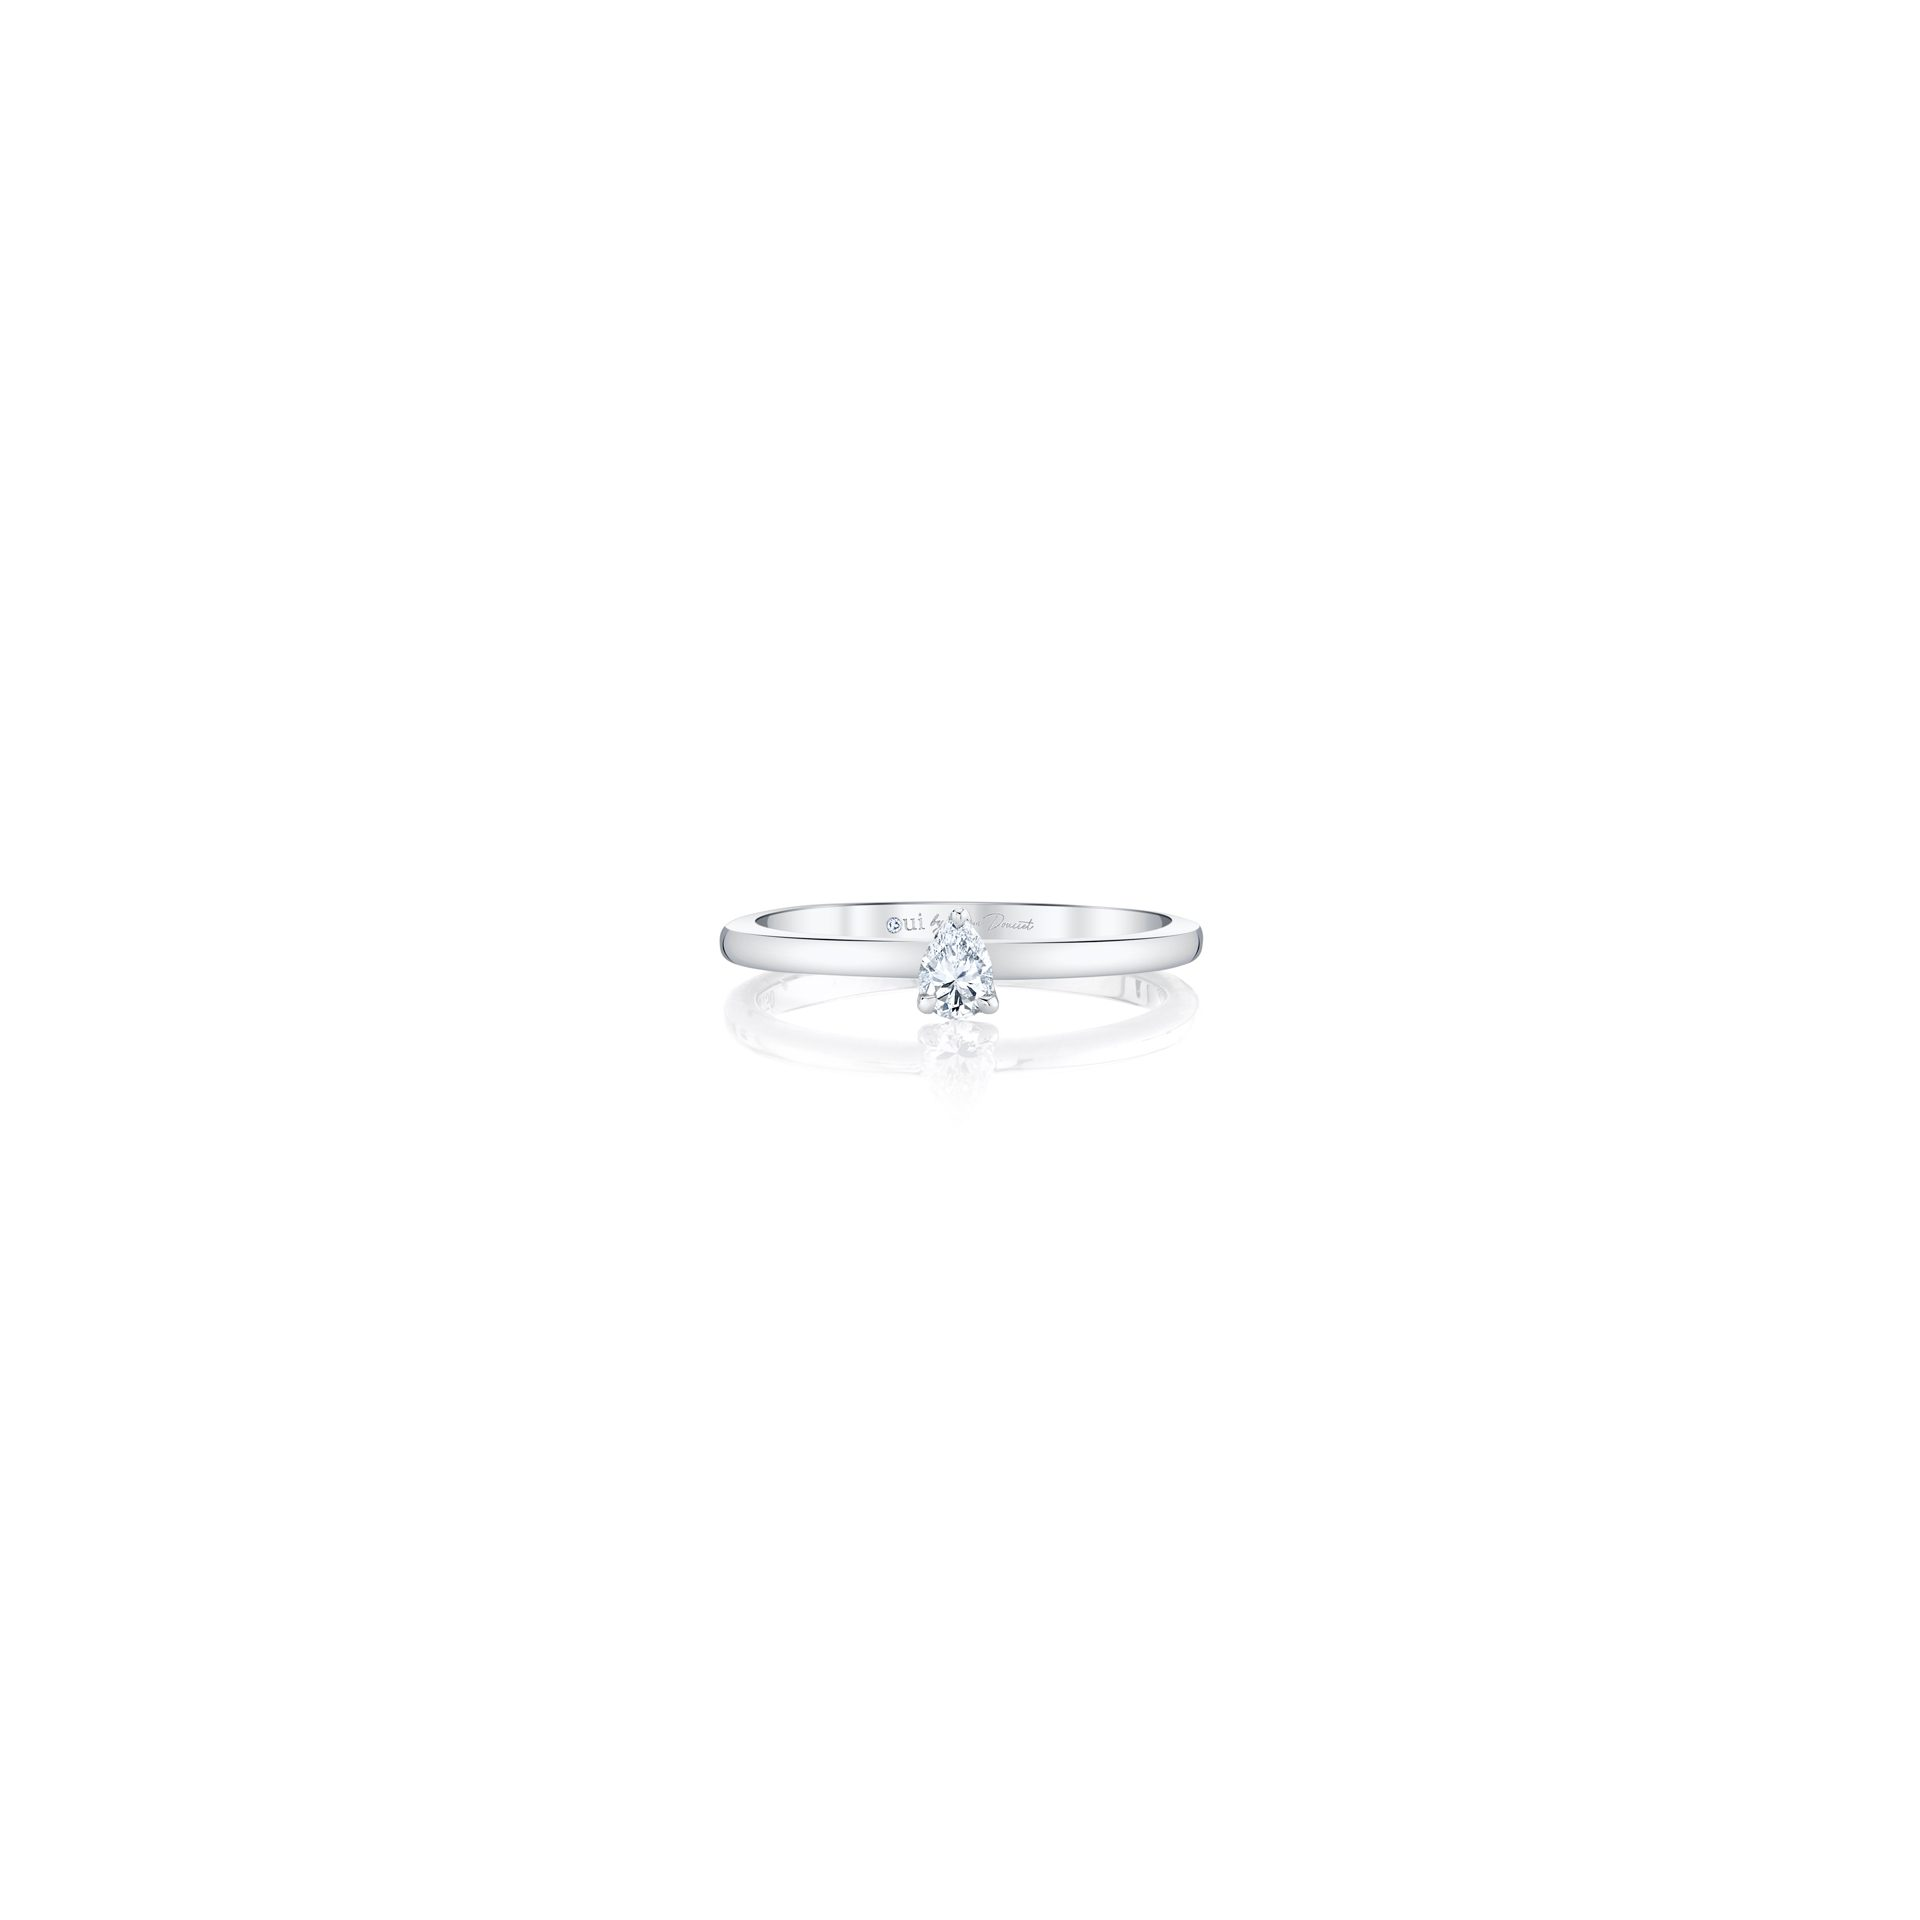 La Petite Pear Diamond Wedding Band in 18k White Gold Front View by Oui by Jean Dousset